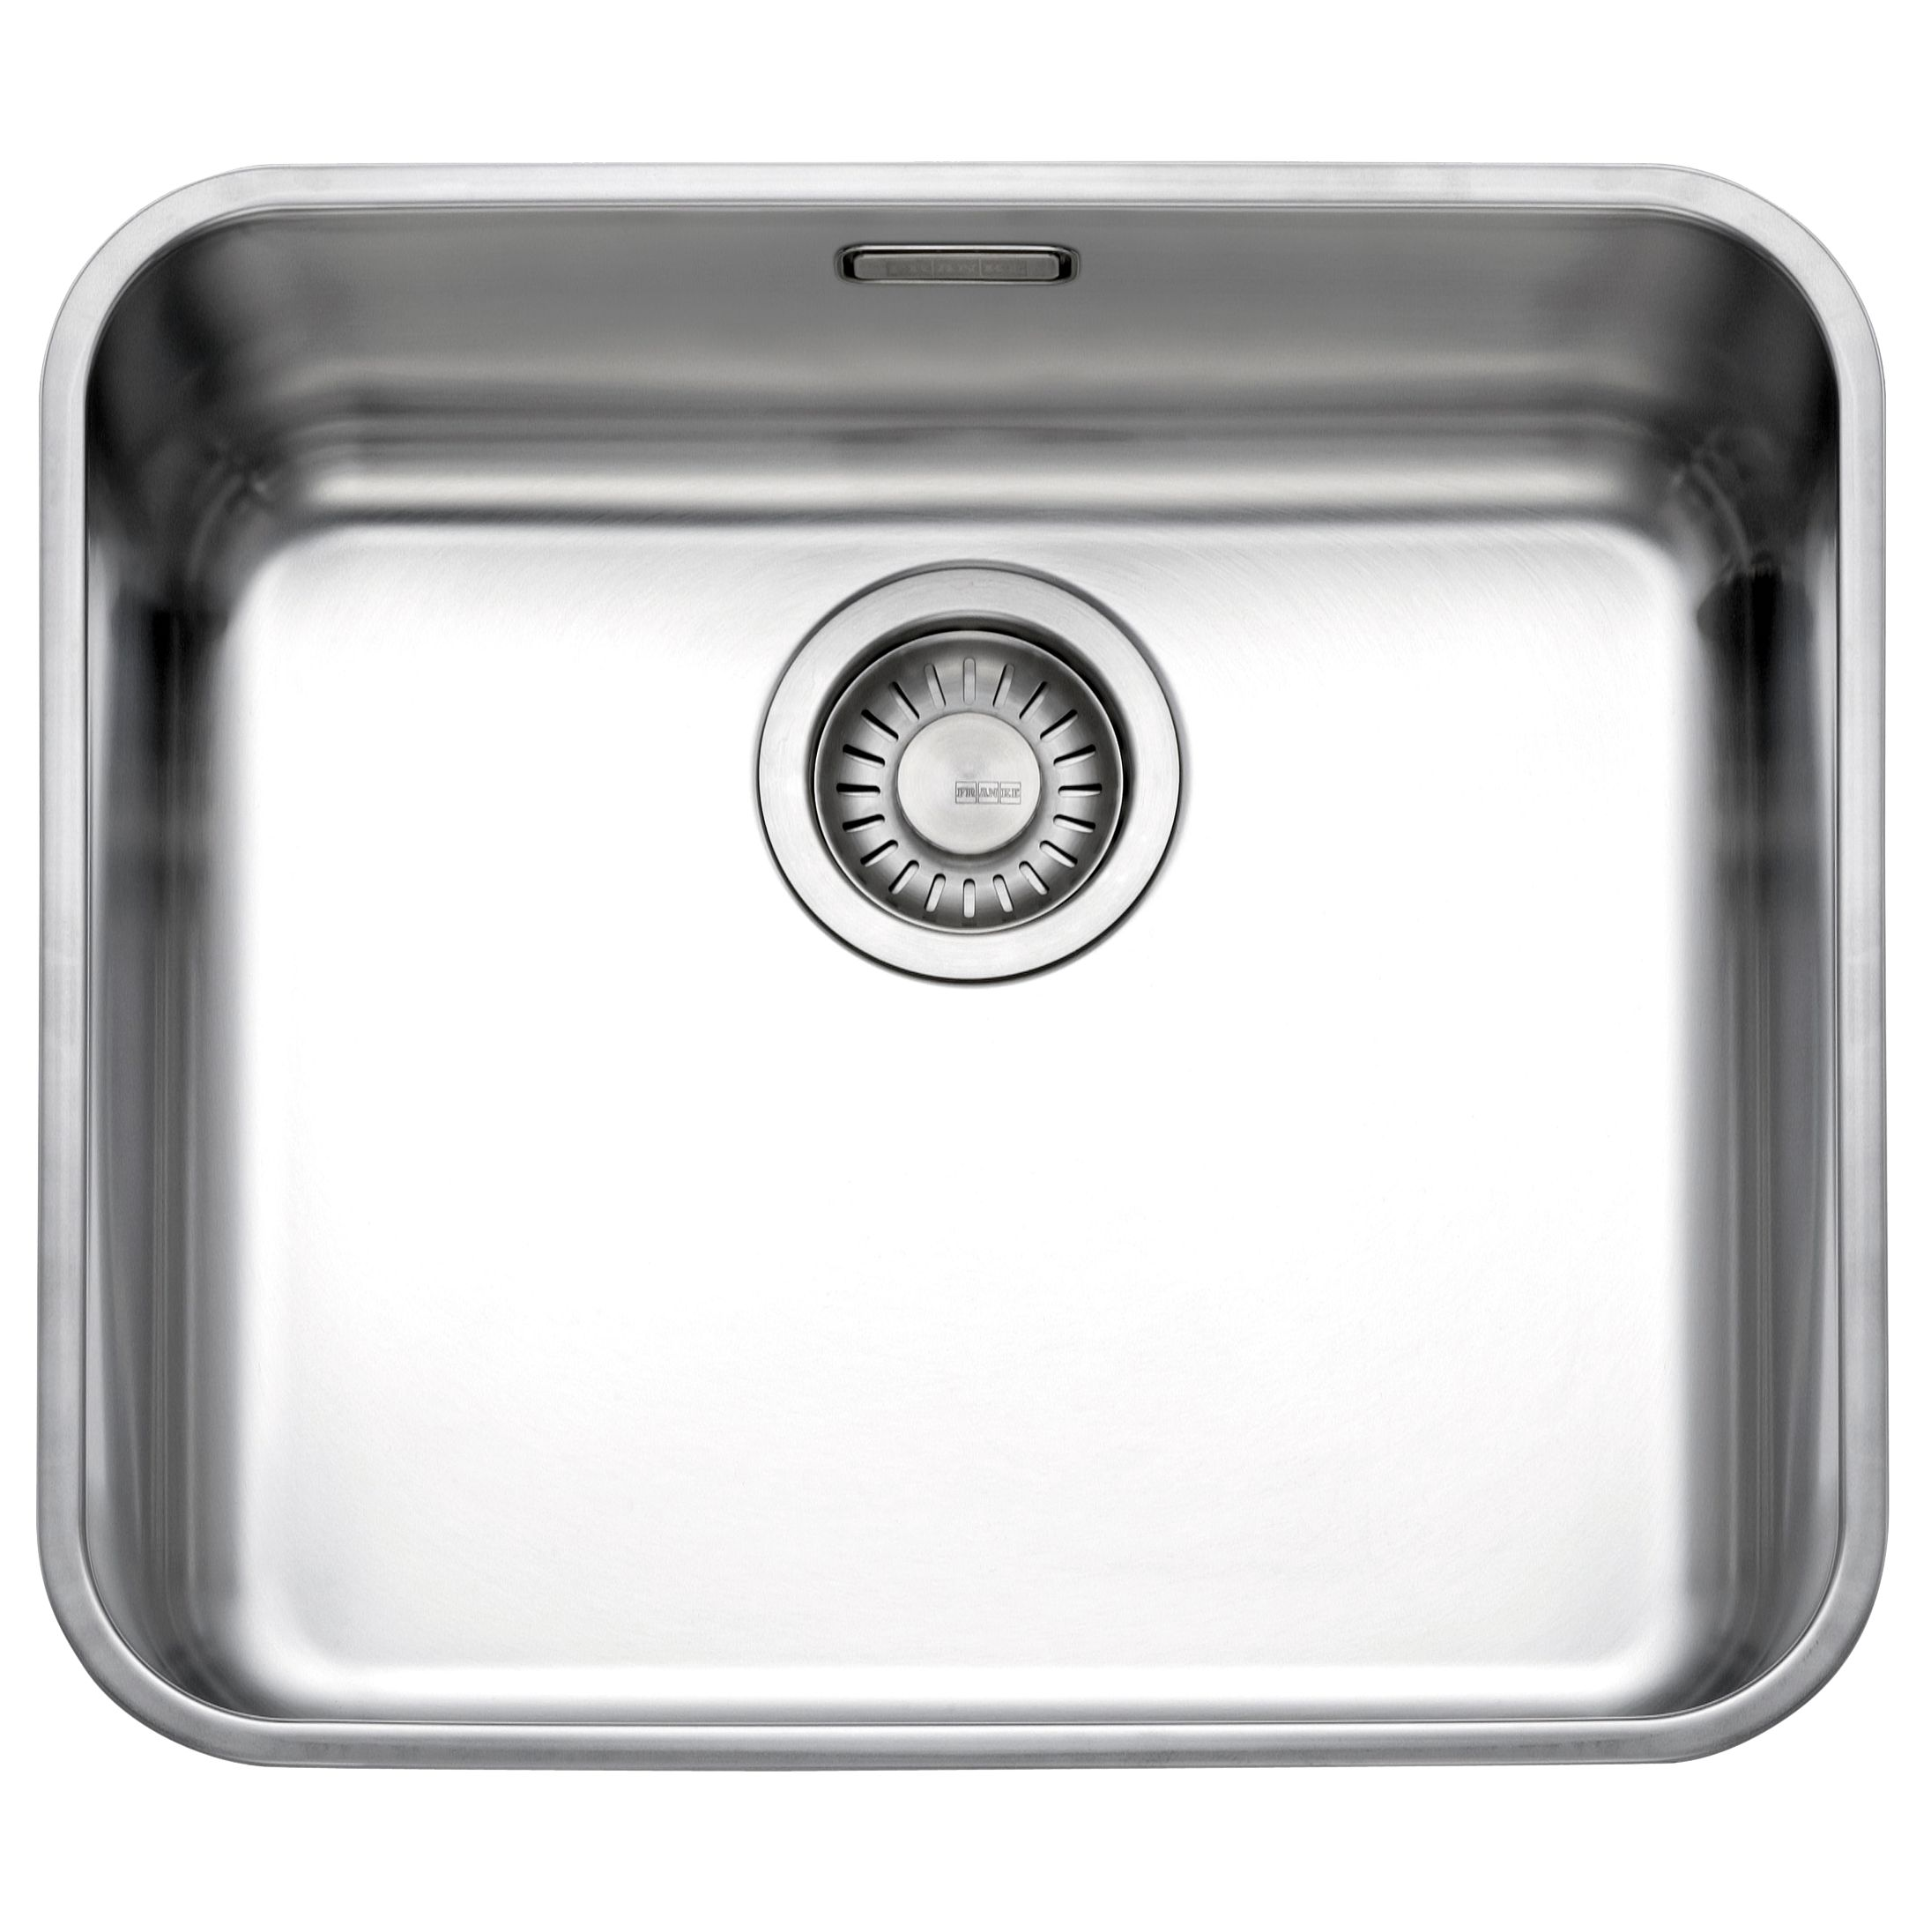 Franke Franke Largo LAX 110 45 Undermounted Single Bowl Sink, Stainless Steel